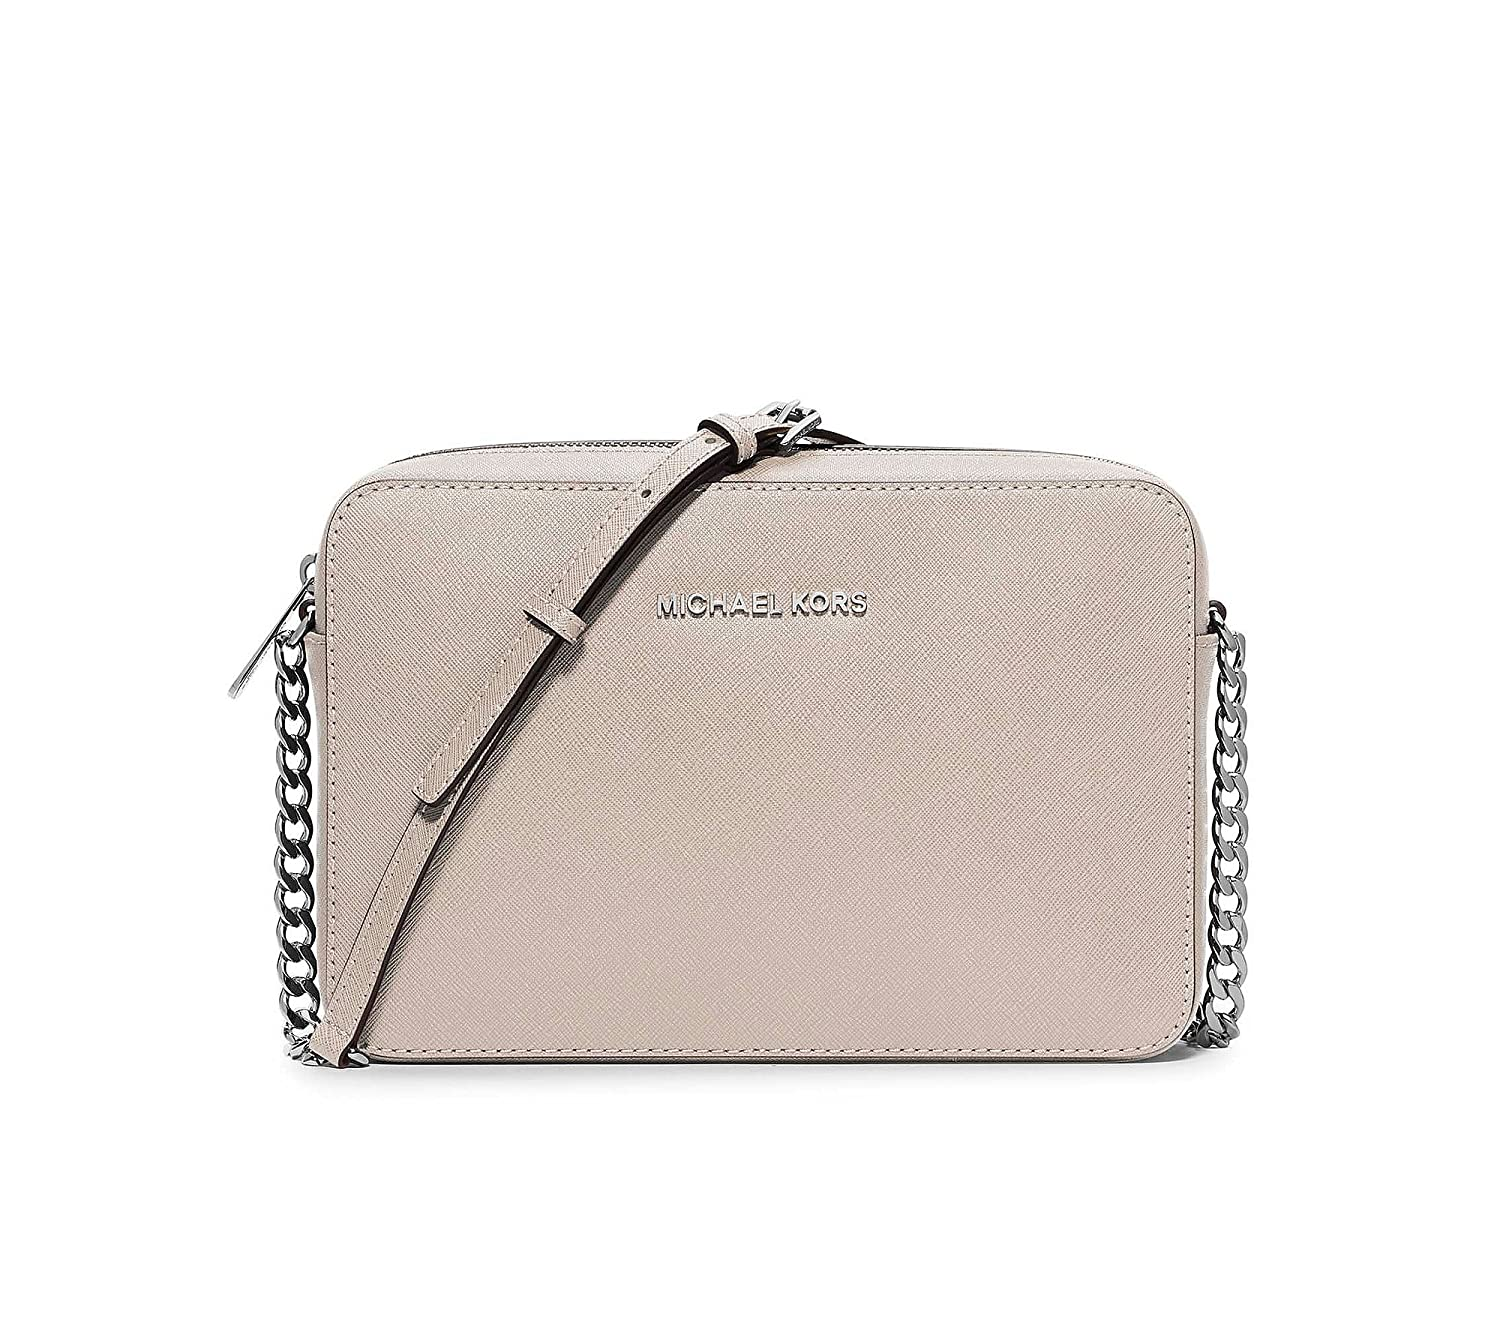 dc58e2d0b8 Borsa a tracolla Michael Kors Jet Set in pelle saffiano grigio cemento:  Amazon.co.uk: Shoes & Bags